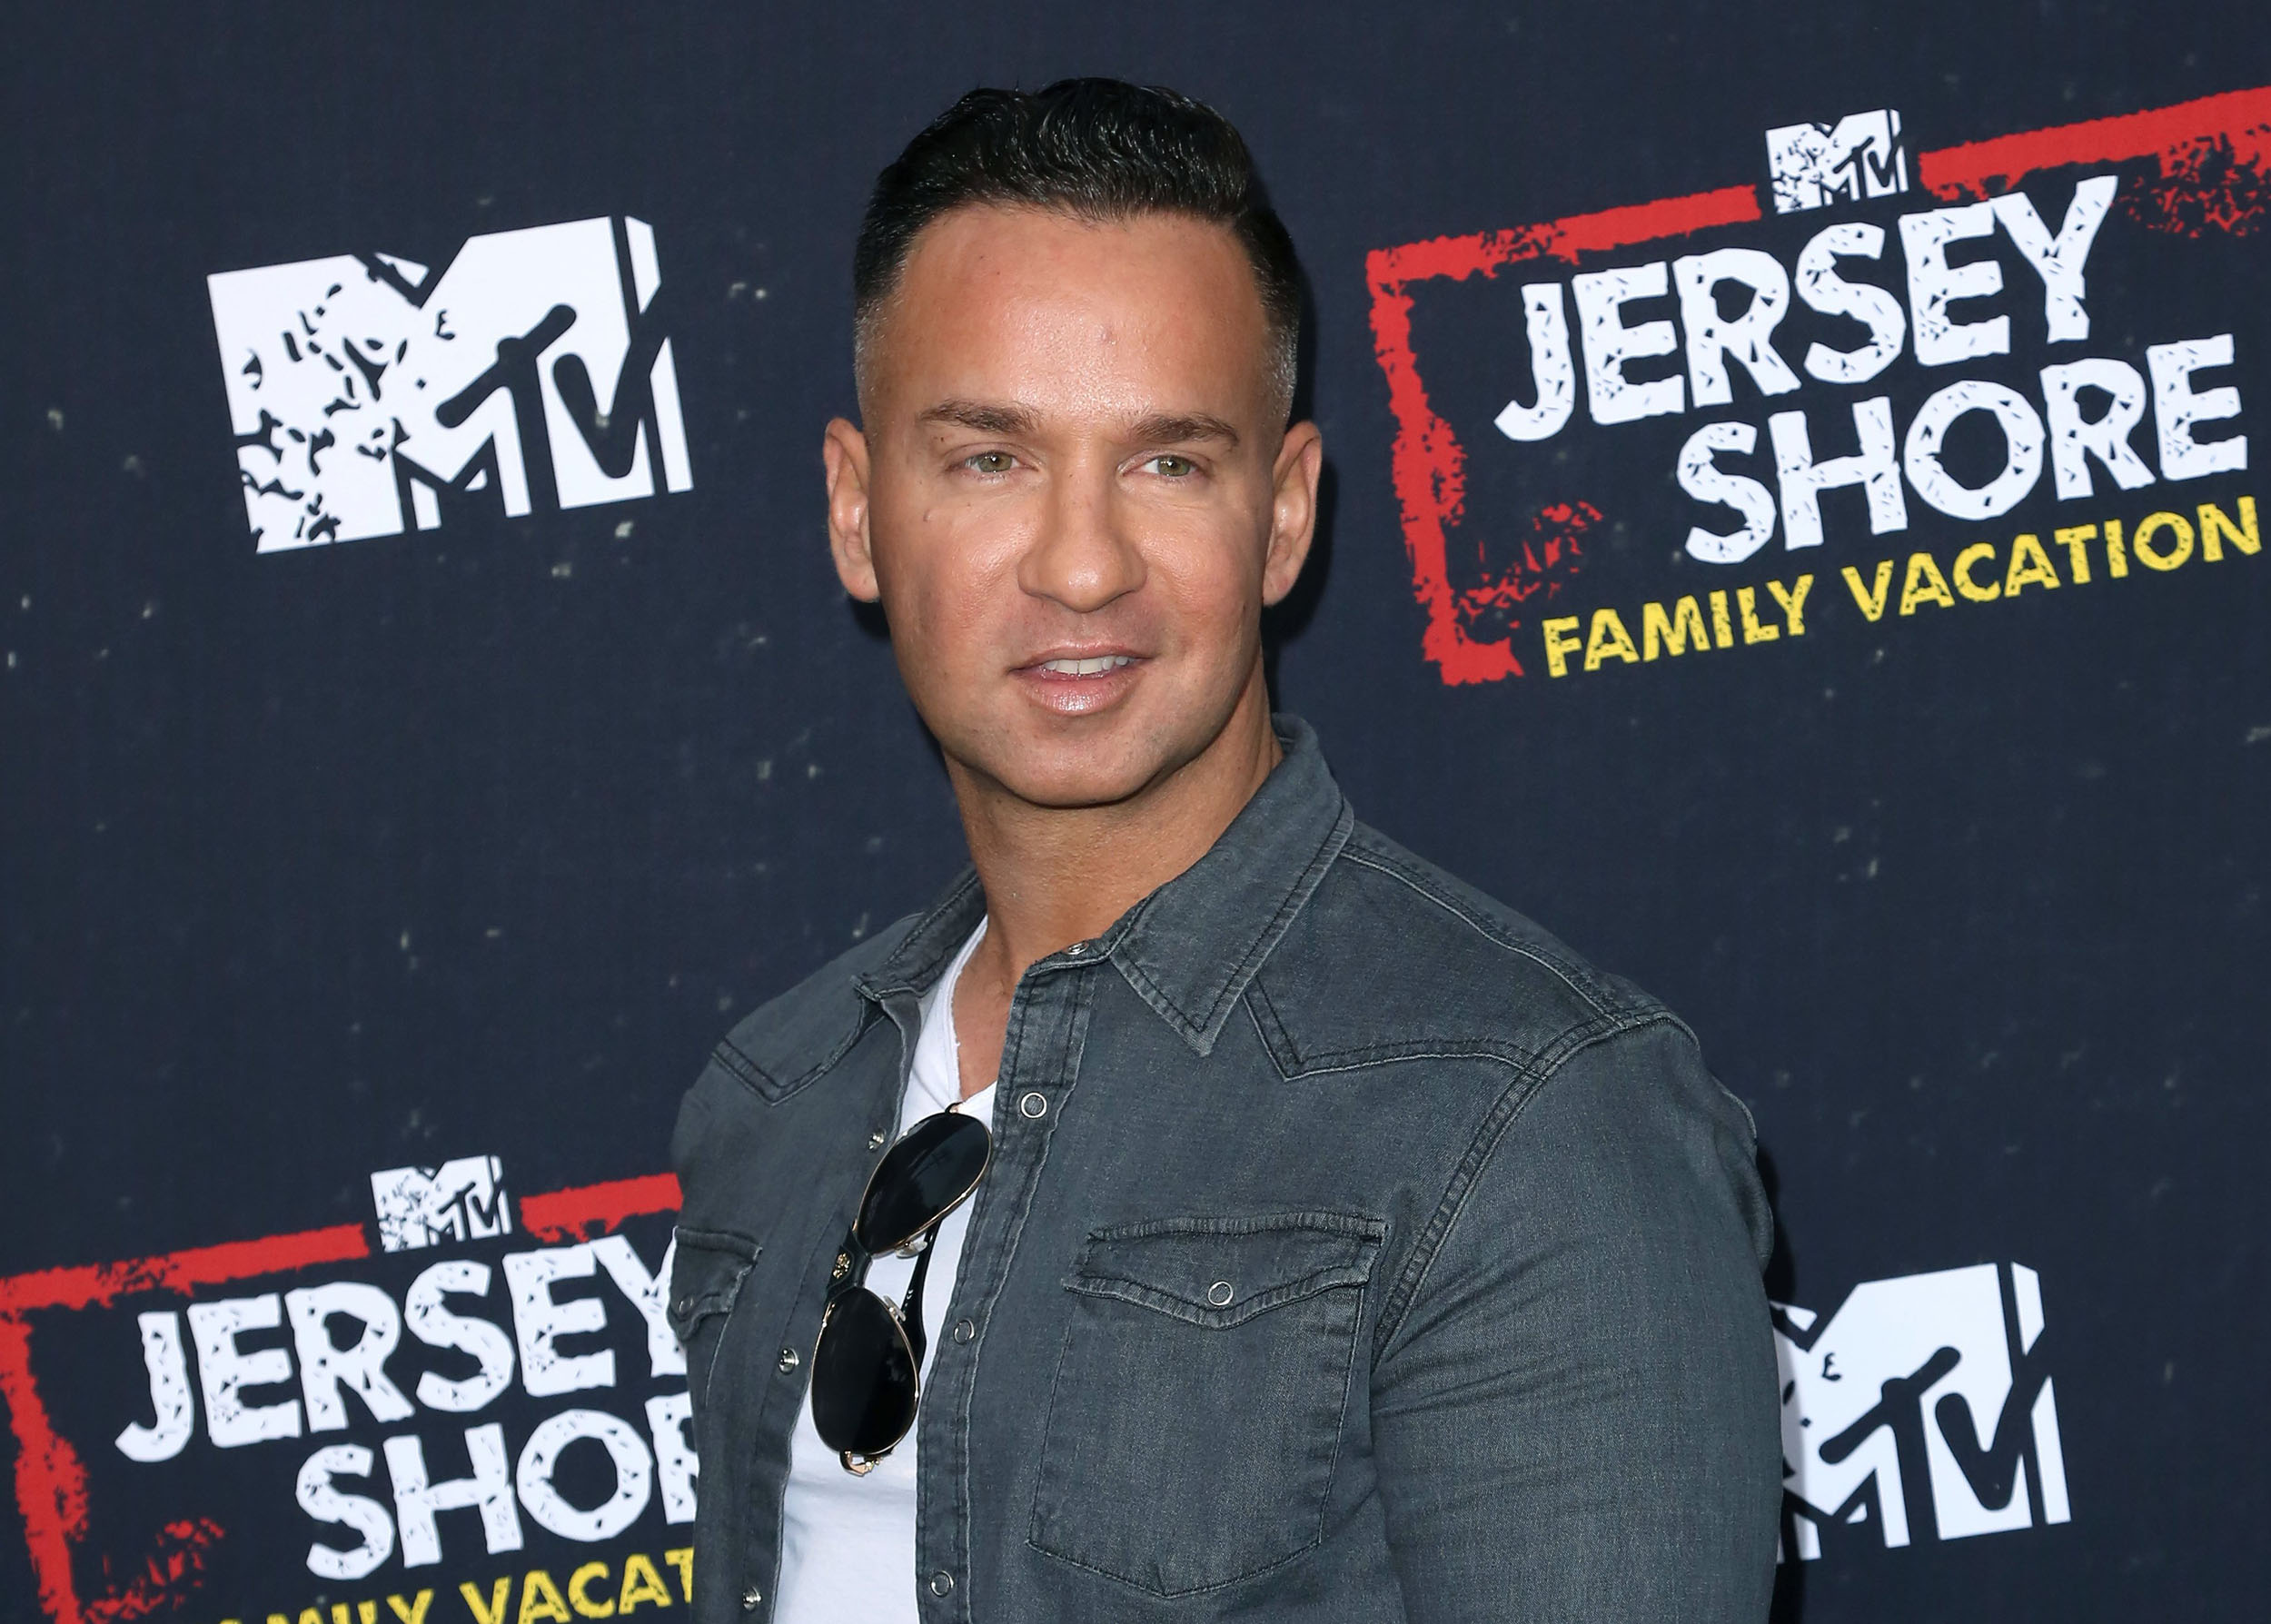 Jersey Shore' star Mike 'The Situation' Sorrentino sentenced 8 ...